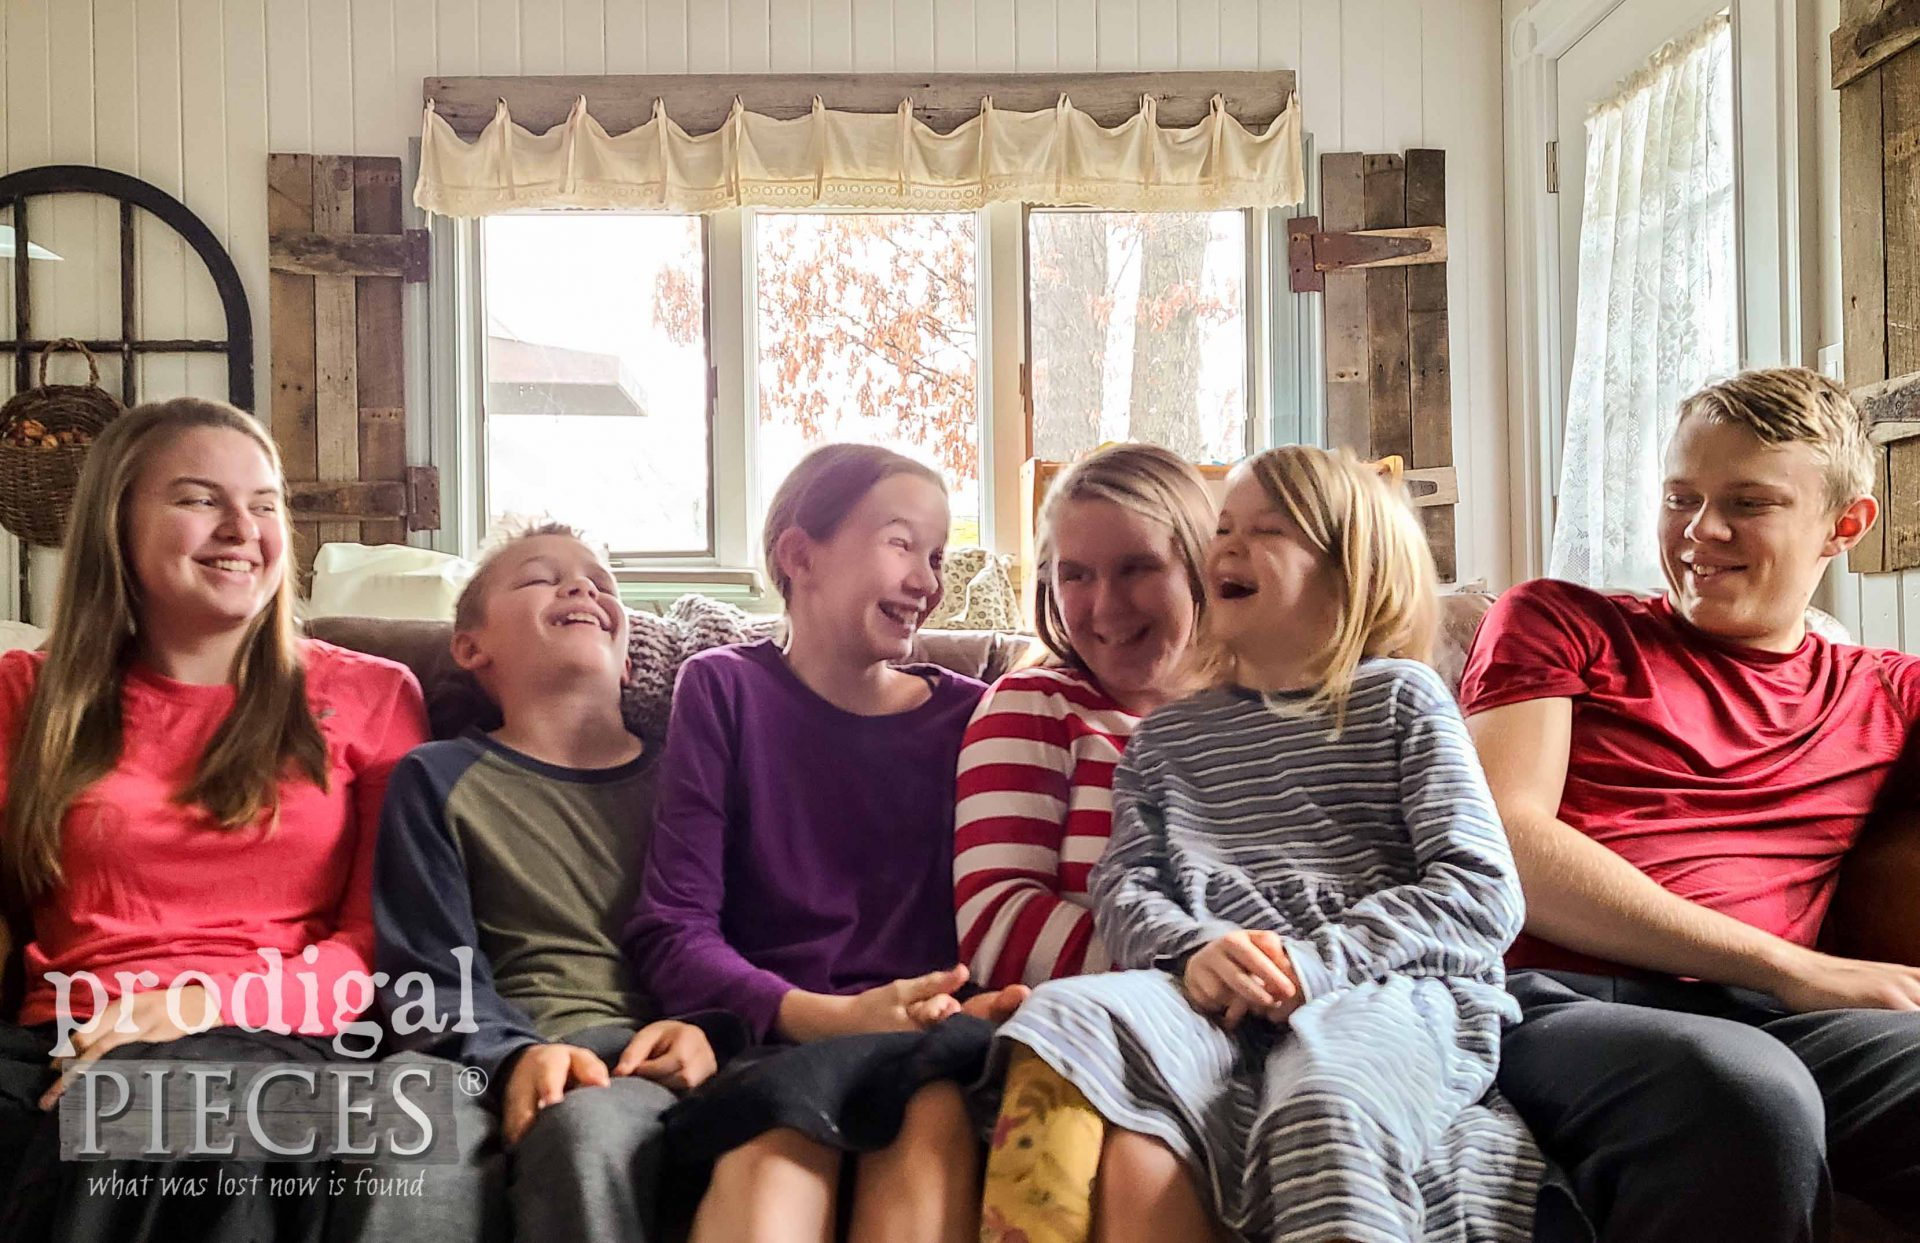 Kids Laughing with Thankfulness and Making Memories | Prodigal Pieces | prodigalpieces.com #prodigalpieces